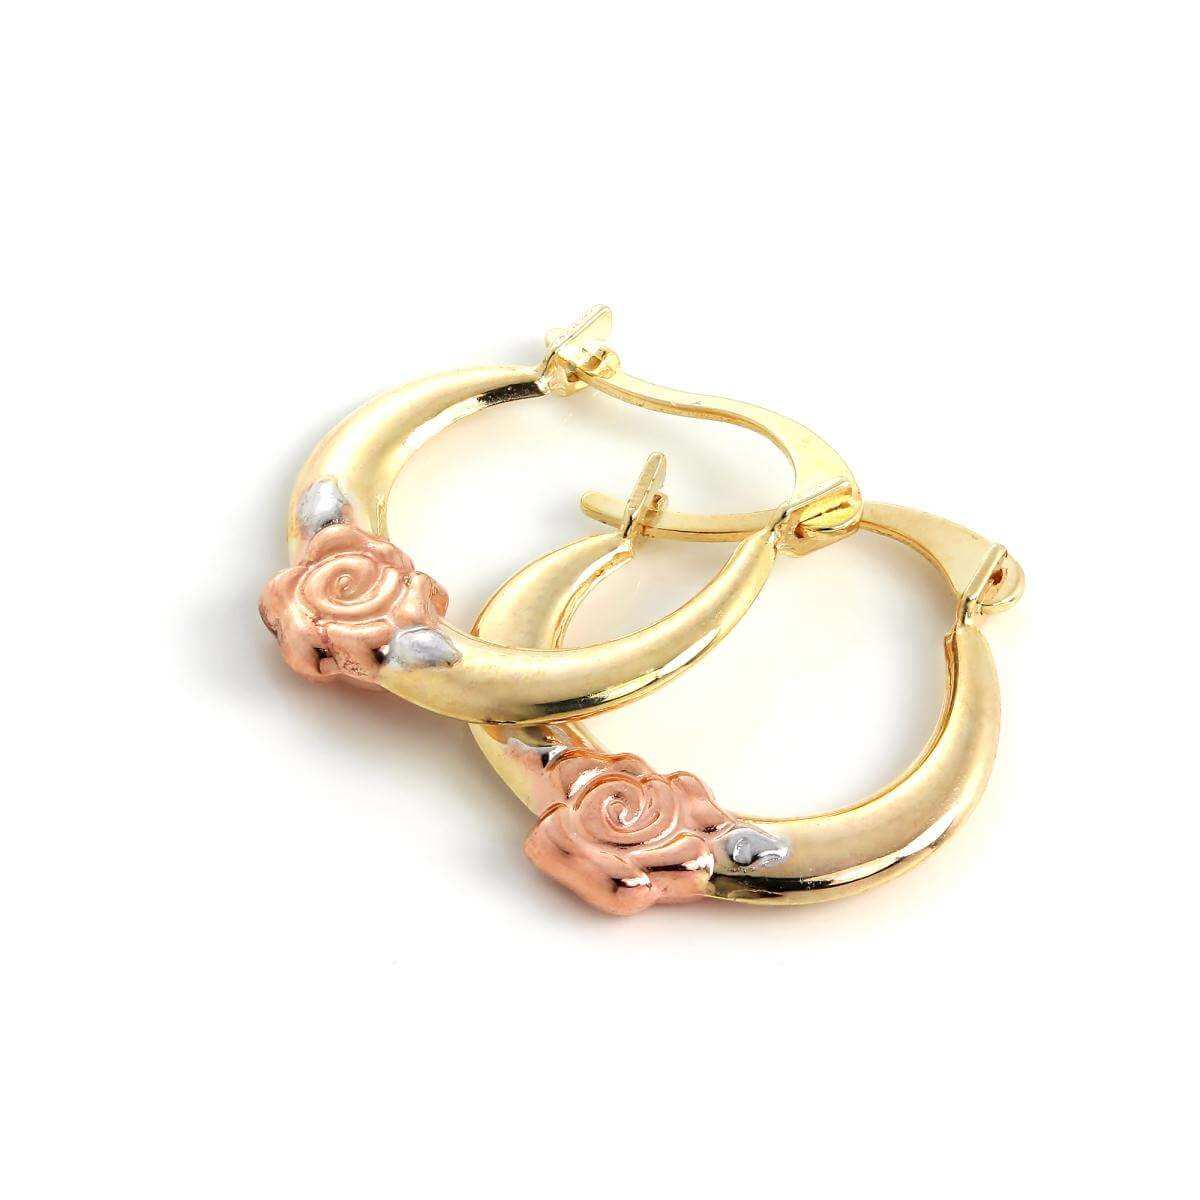 9ct Yellow White & Rose Gold 13mm Hoop with Rose Bud Creole Earrings